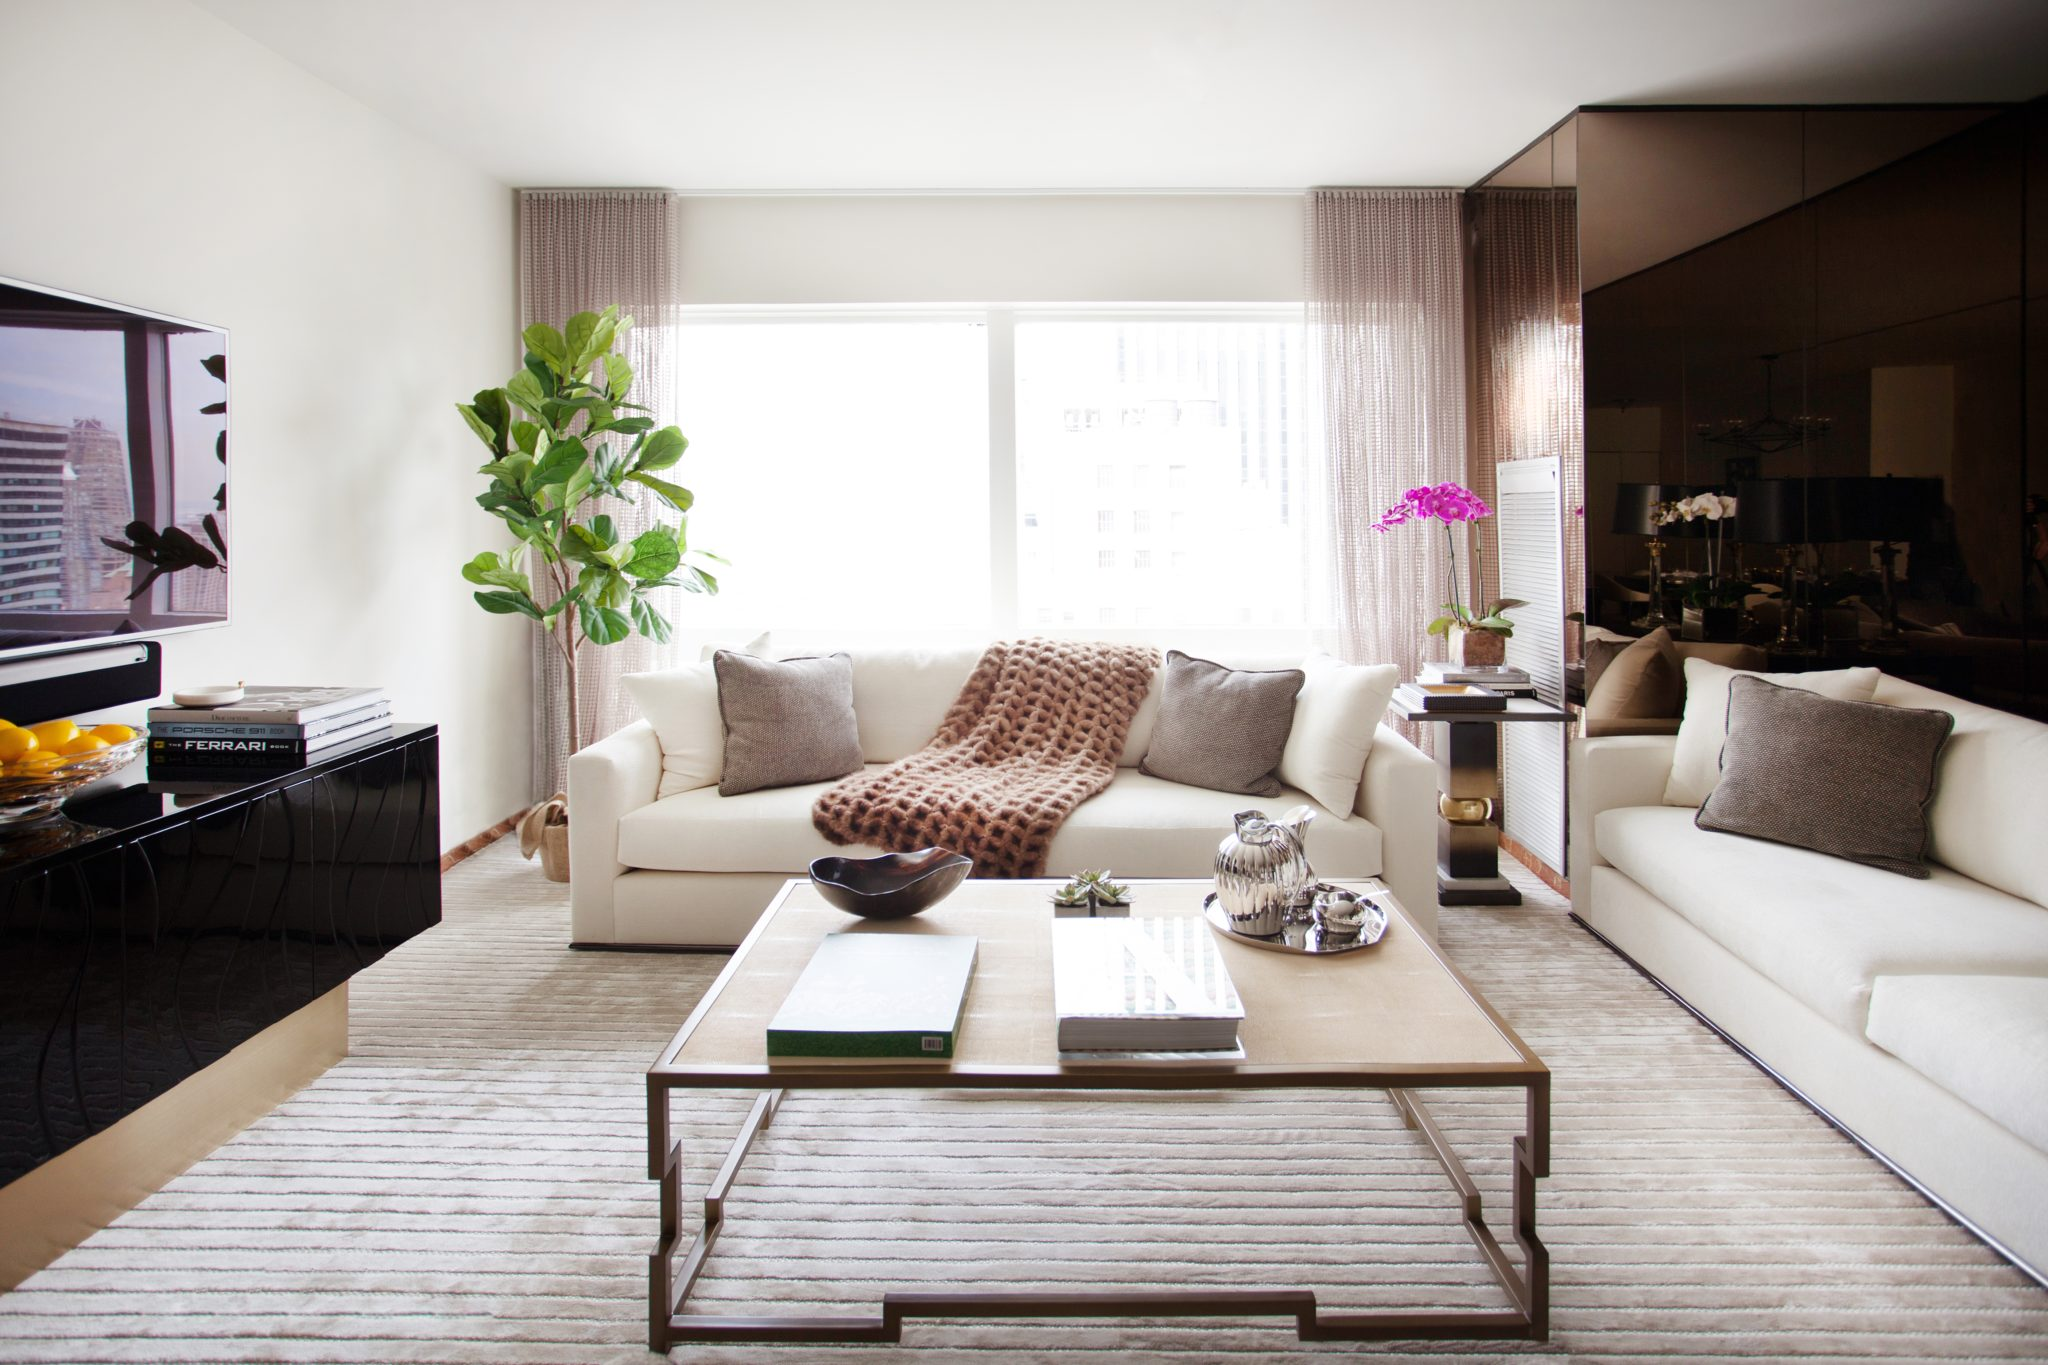 - 25 Living Rooms With Oversized Coffee Tables - Chairish Blog